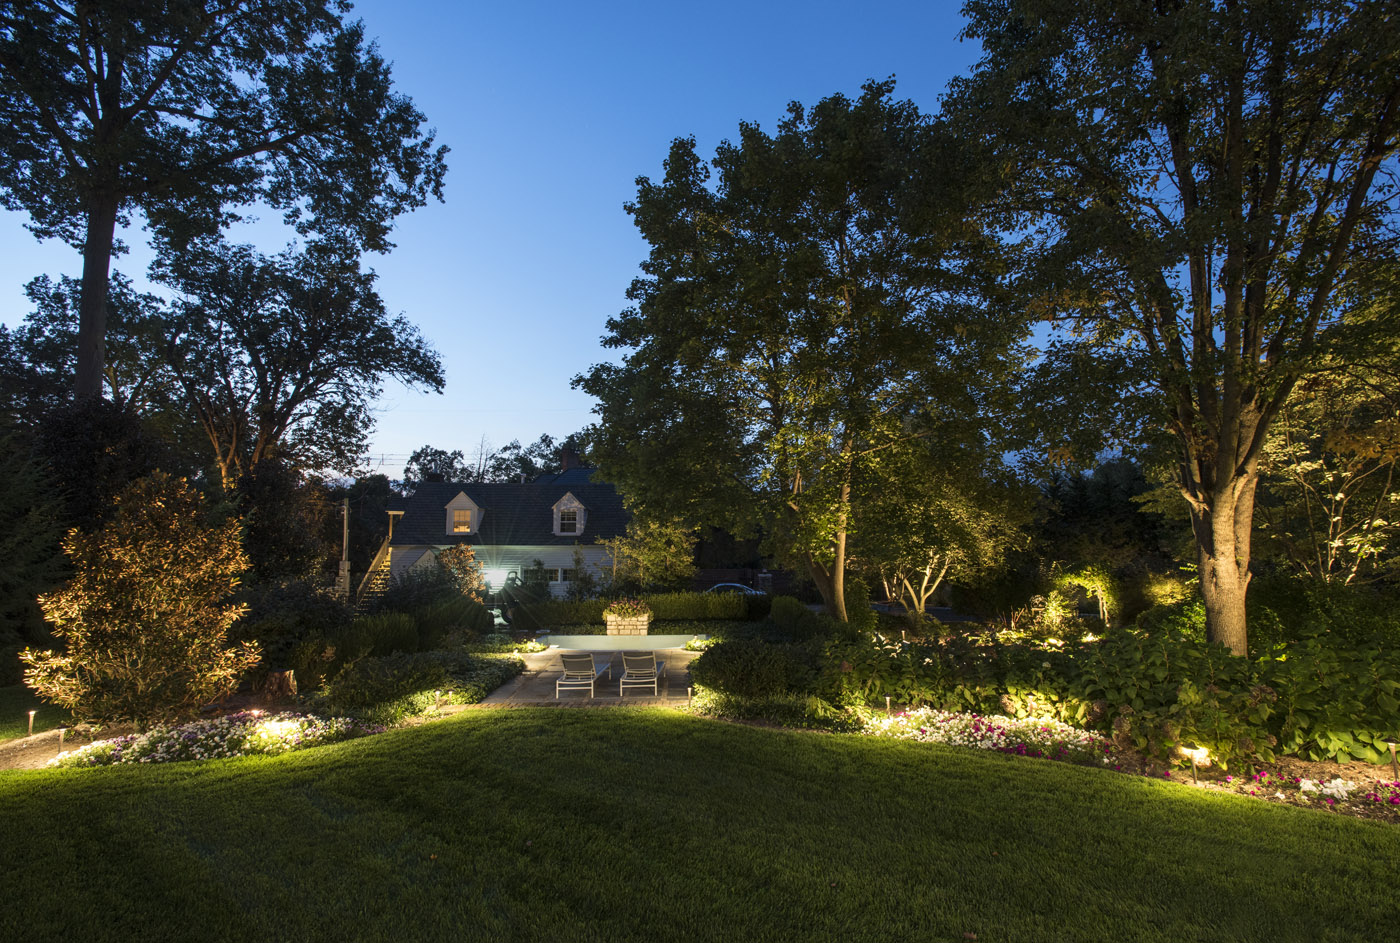 Being Such A Joyful Part Of Your Homeu0027s Outdoor Living Appeal, Illuminating  Your Favorite Landscape Features With Louisville Landscape Lighting Allows  You ...